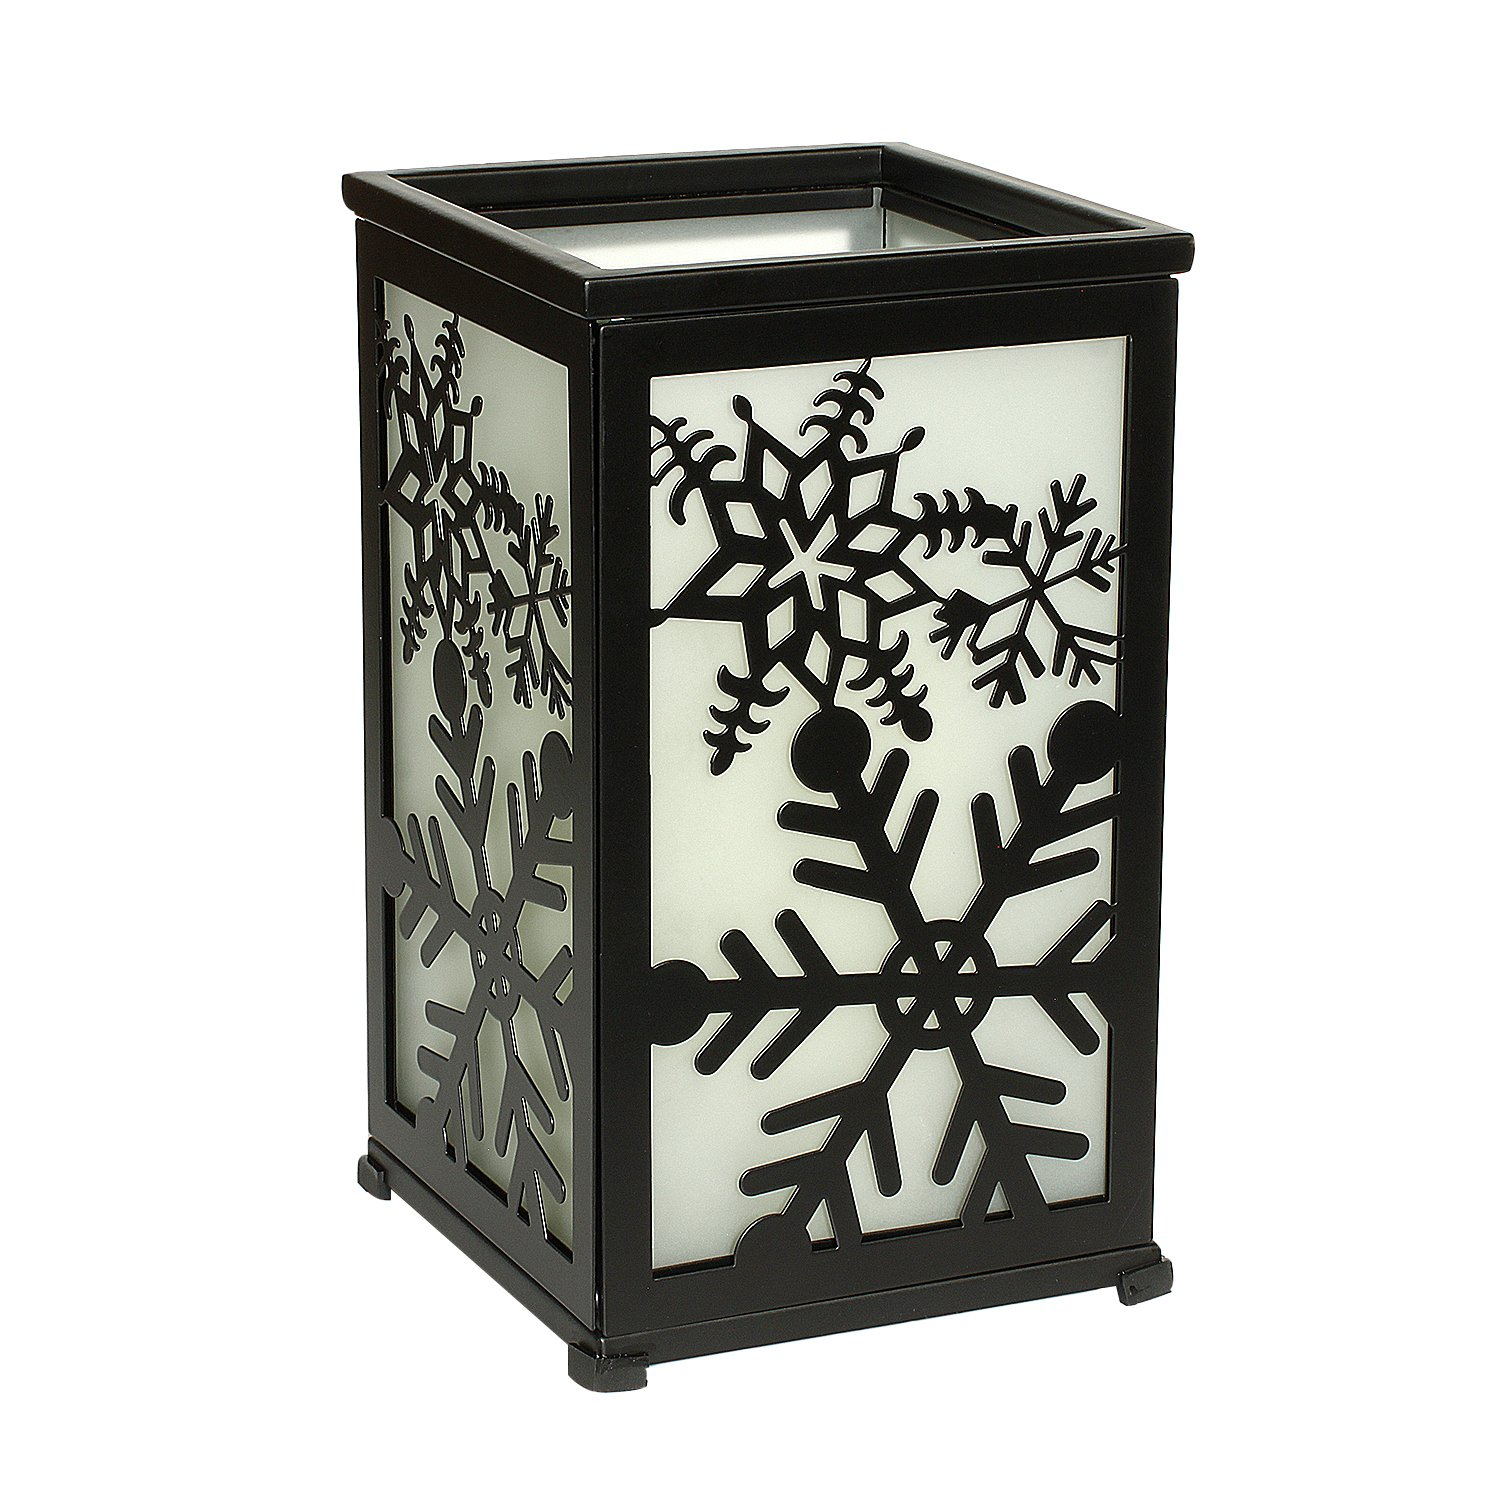 GiveU Decorative Rustic Lantern with Flickering Flameless LED Candle, Hurricane Lantern with Twelve Magnetic Seasonally Themed Panels